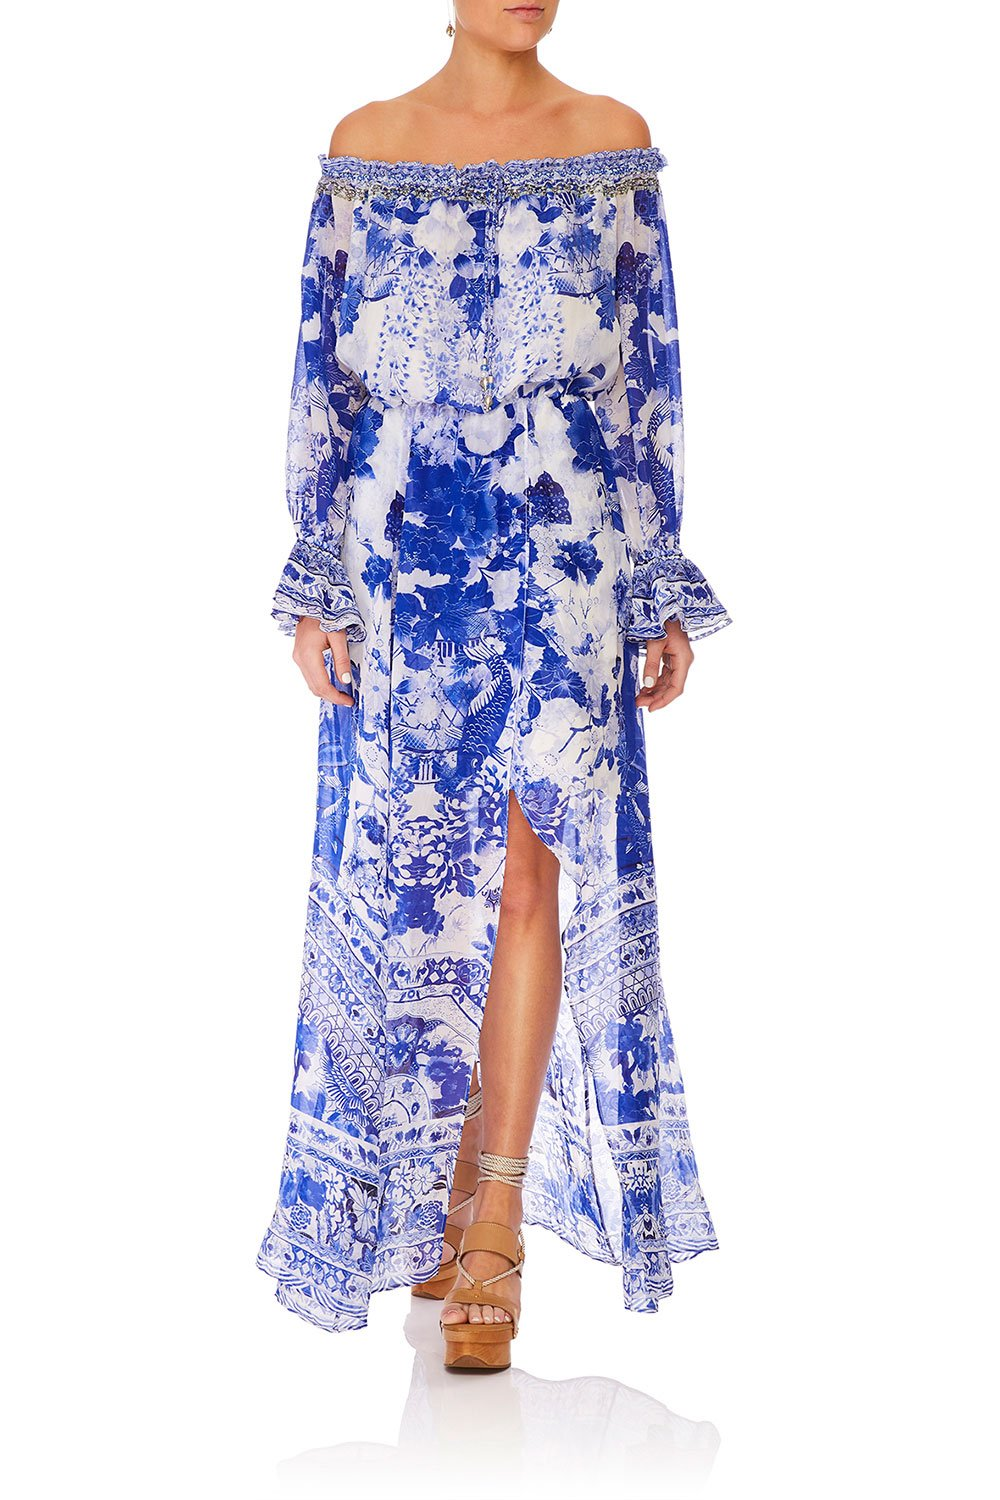 CAMILLA DROP SHOULDER SPLIT DRESS THE FAN SEA